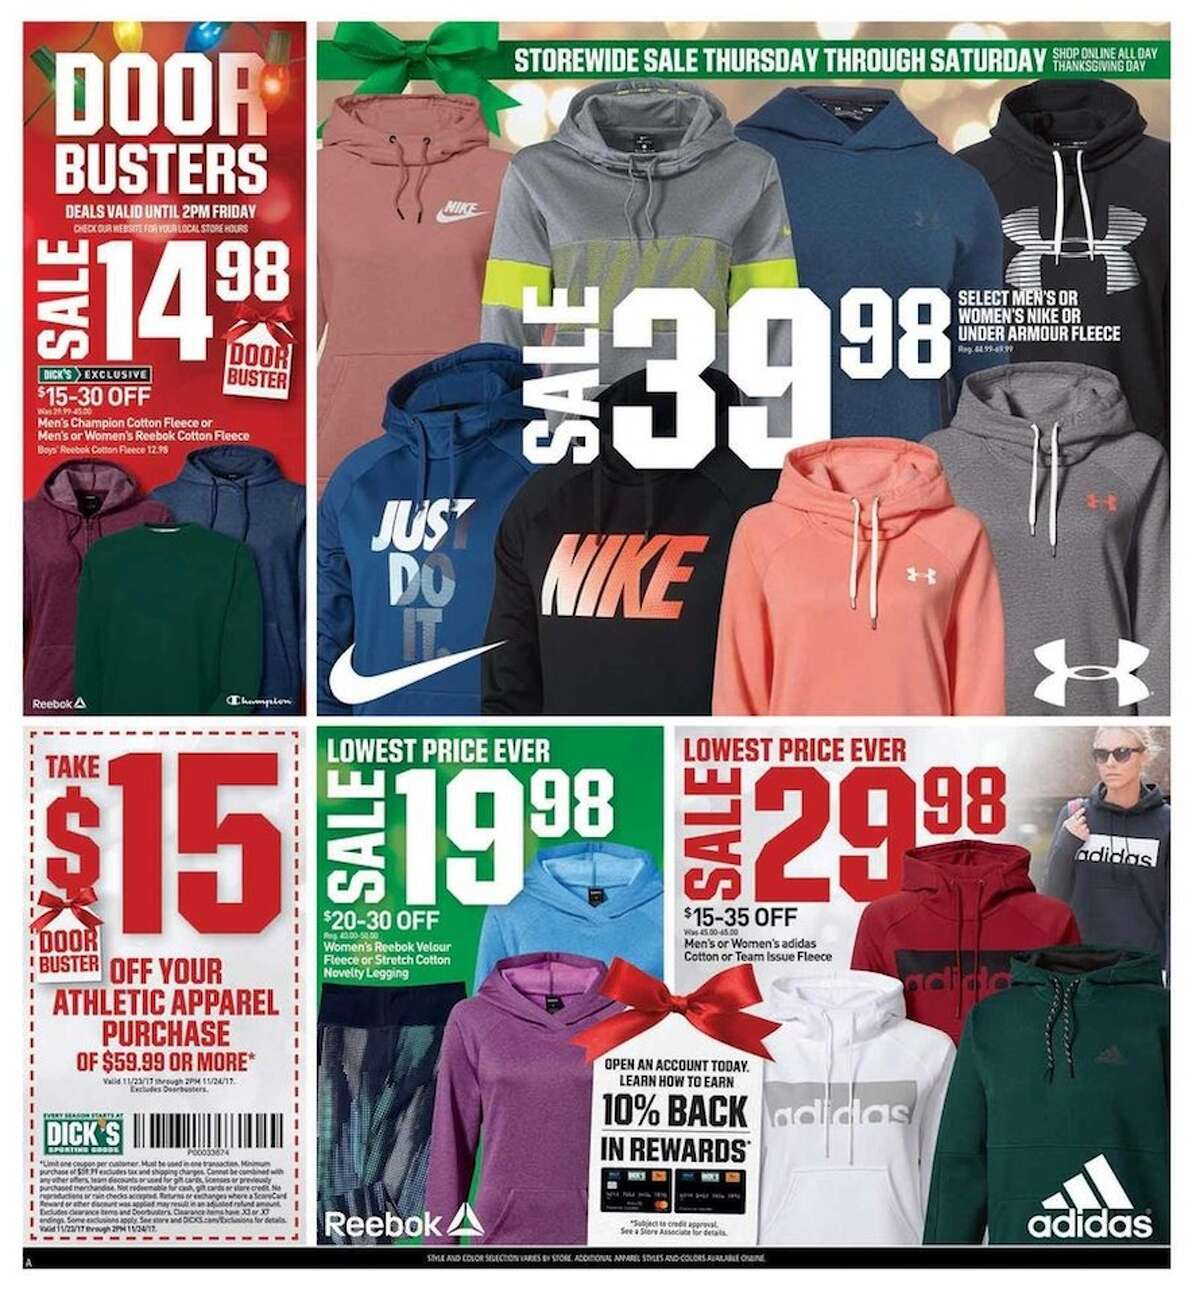 Dick's Sporting Goods released their Black Friday ad and holiday hours. Their stores will be open at 6 p.m. on Thursday, Nov. 23 until 2 p.m. on Friday, Nov. 24, 2017.